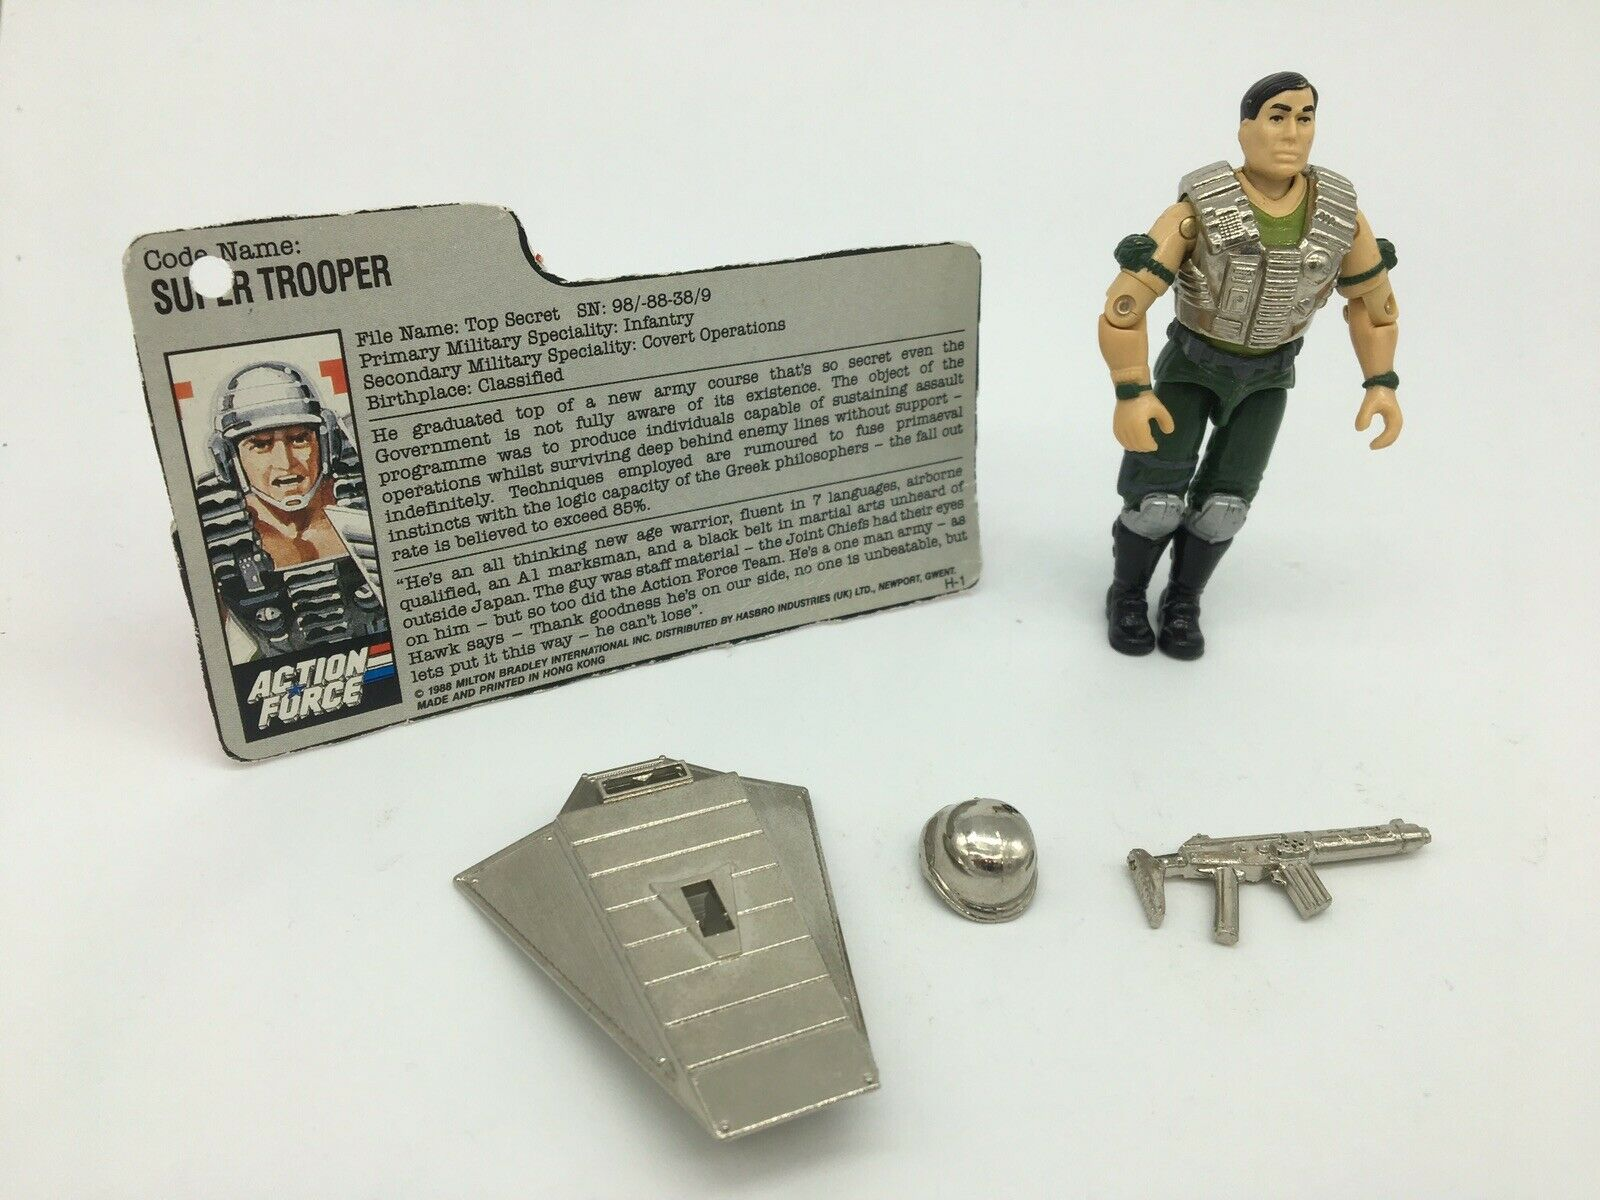 GI Joe, Action Force, SUPER TROOPER, 100% COMPLETE, 1980s, mail away, rare